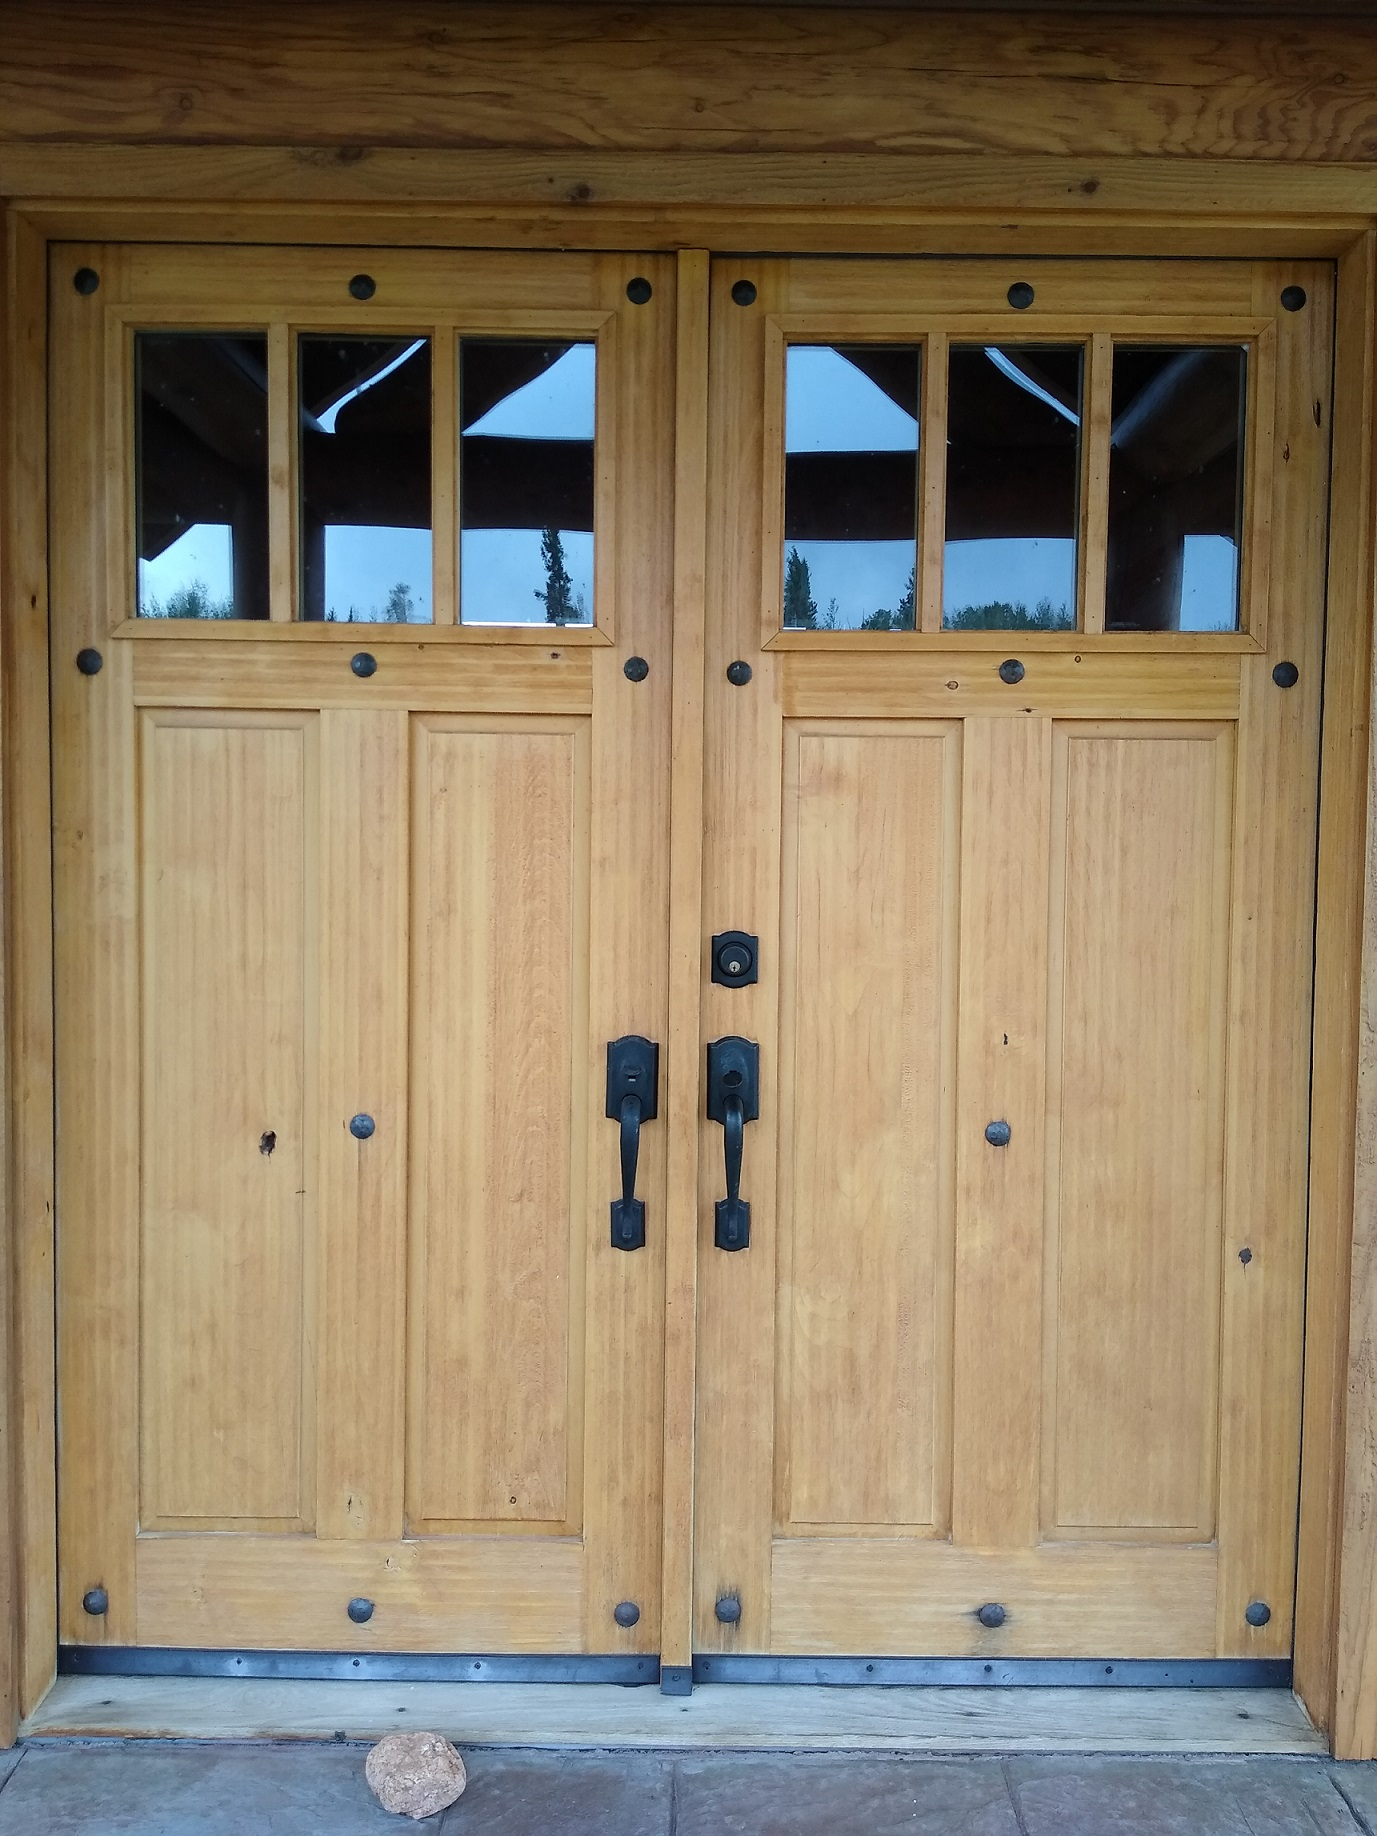 How to restain a wooden front door with rough texture-img_20200731_170717015.jpg